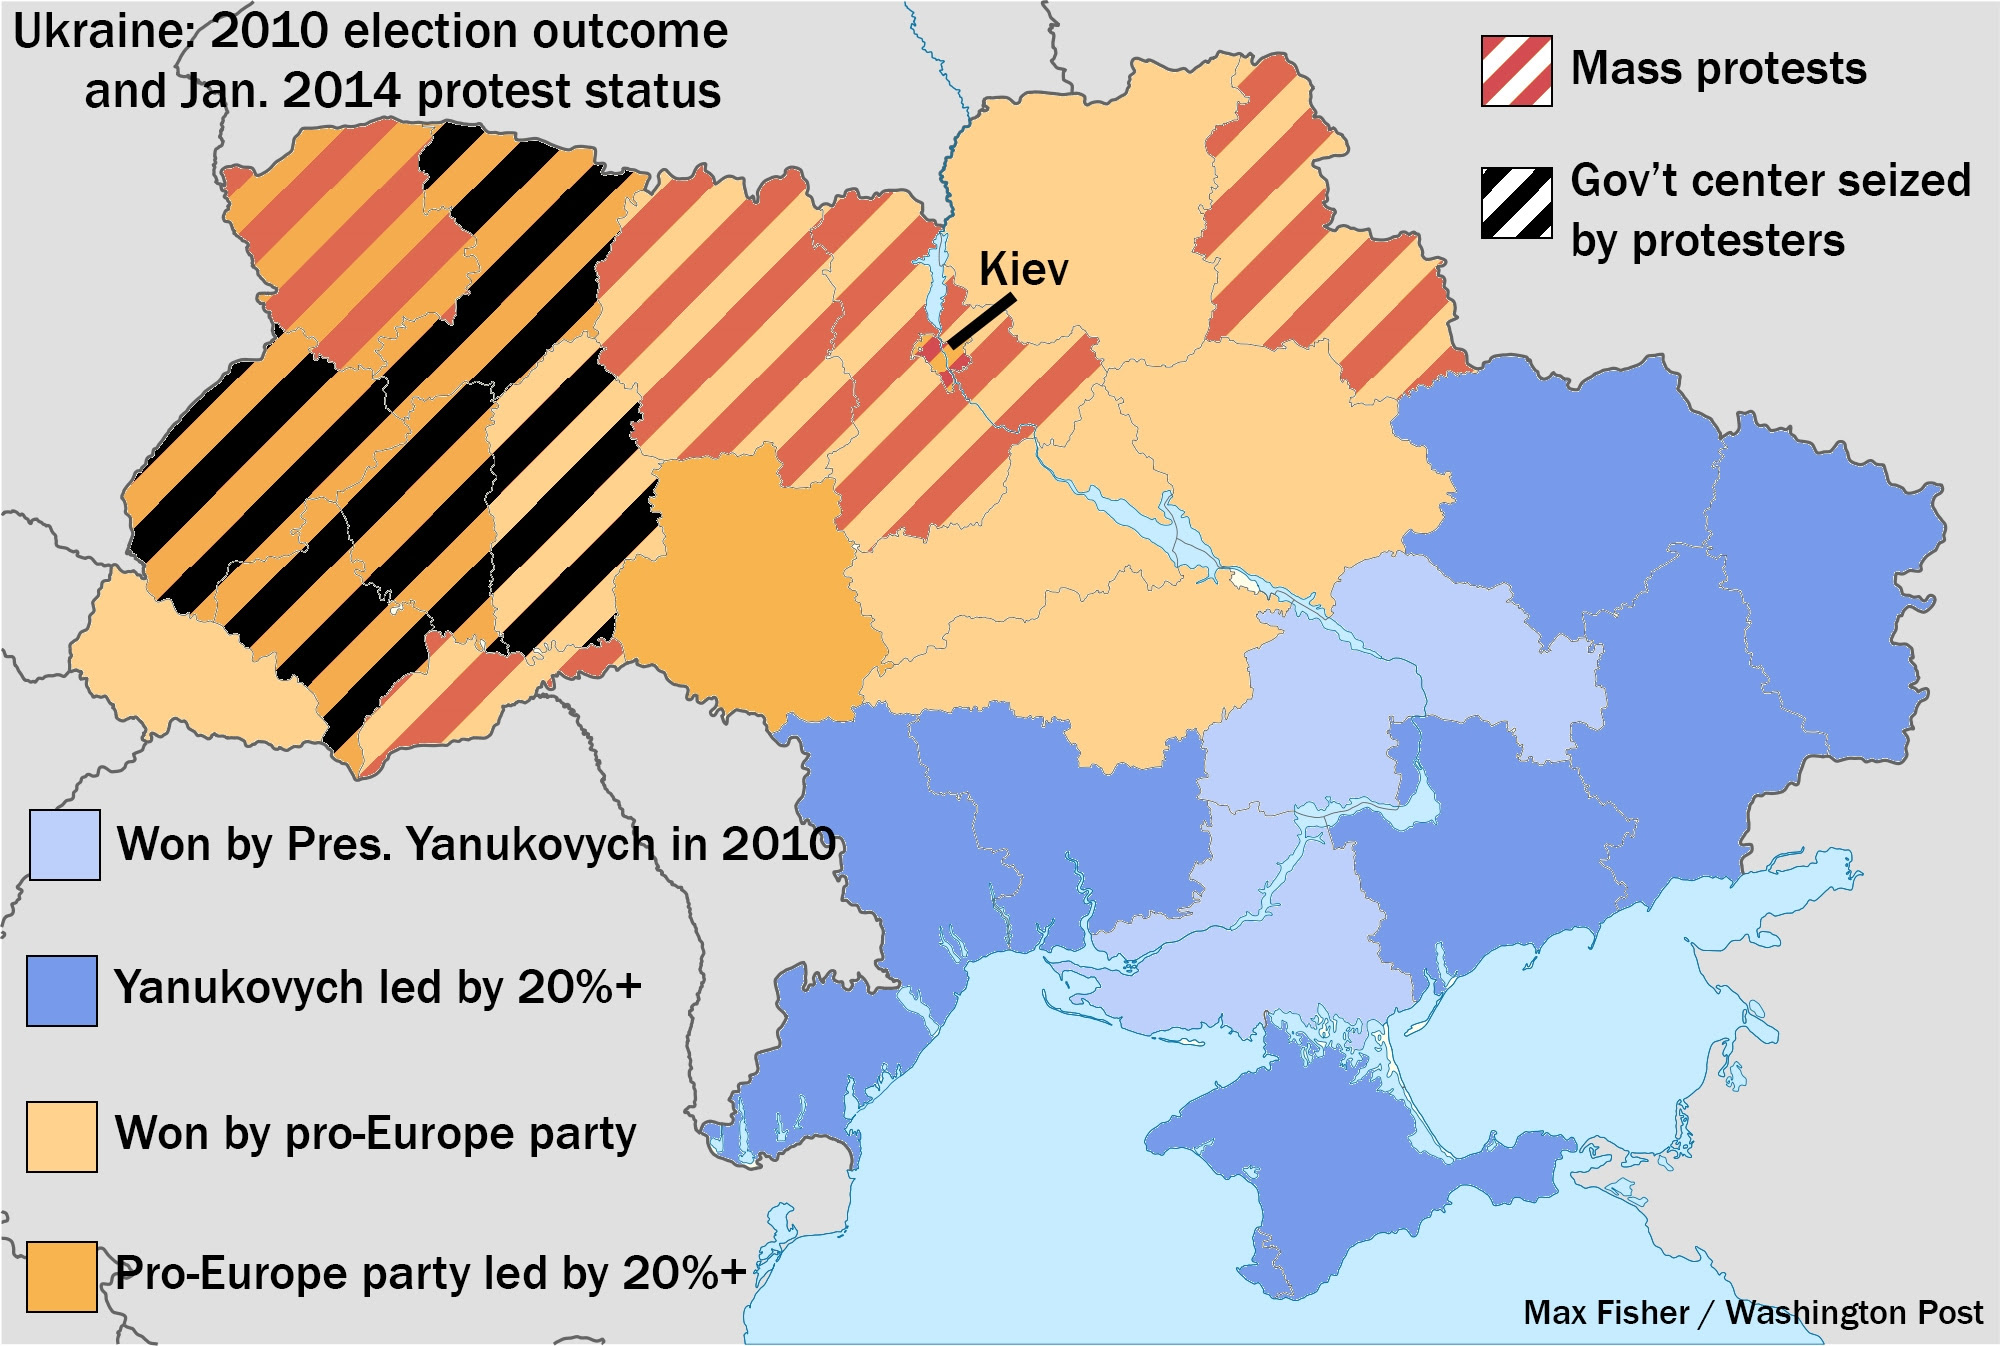 http://www.washingtonpost.com/blogs/worldviews/files/2014/01/ukraine-protests-map-k.jpg